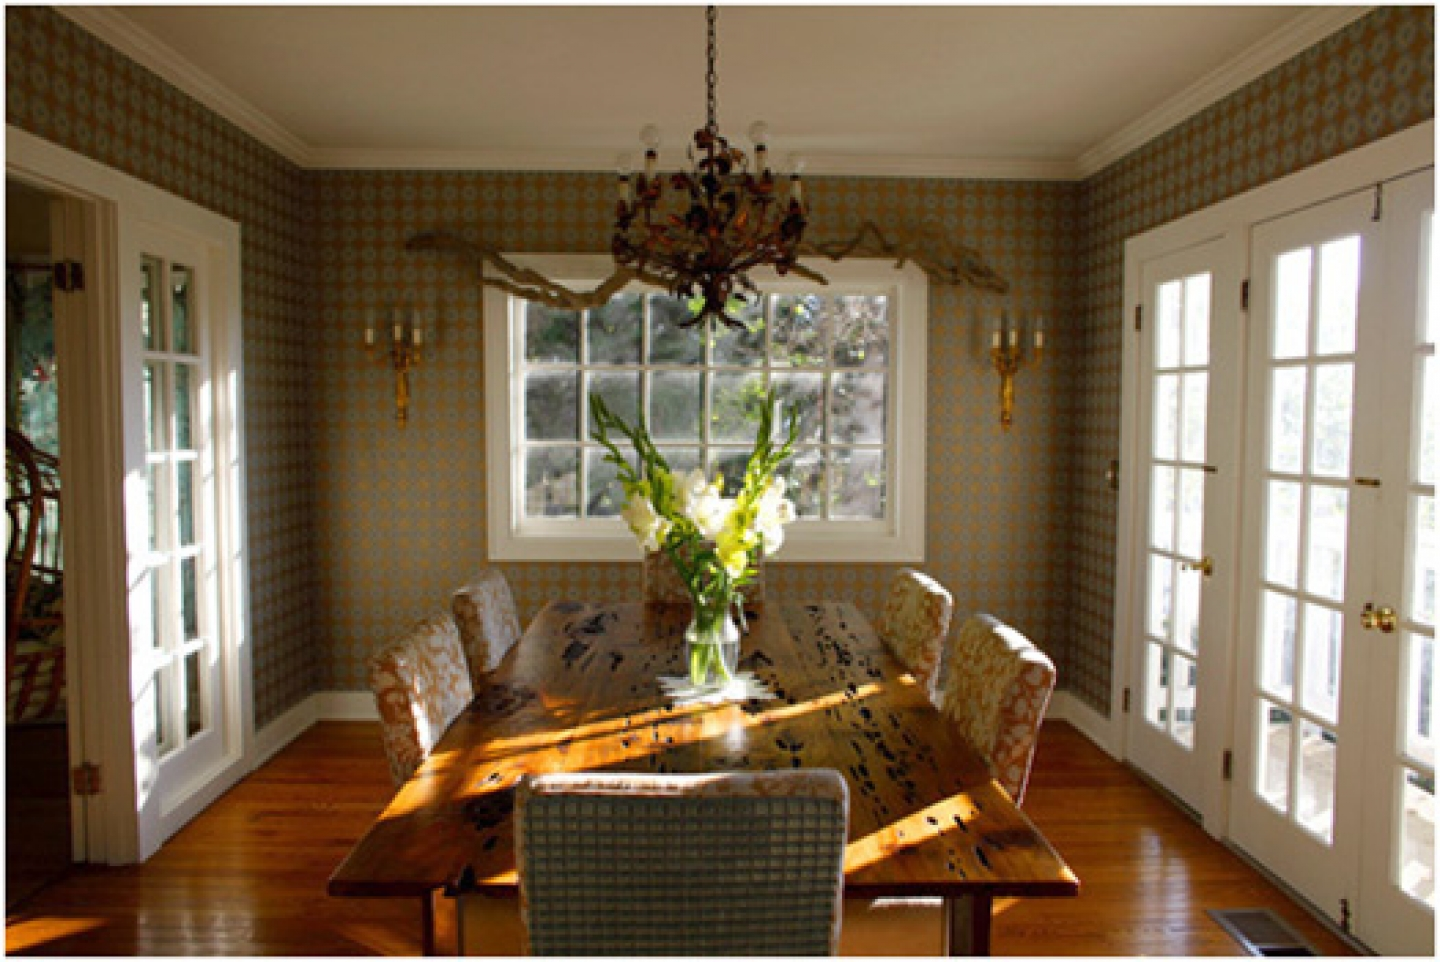 Dining room wallpaper 108 decor ideas for Wallpaper dining room ideas